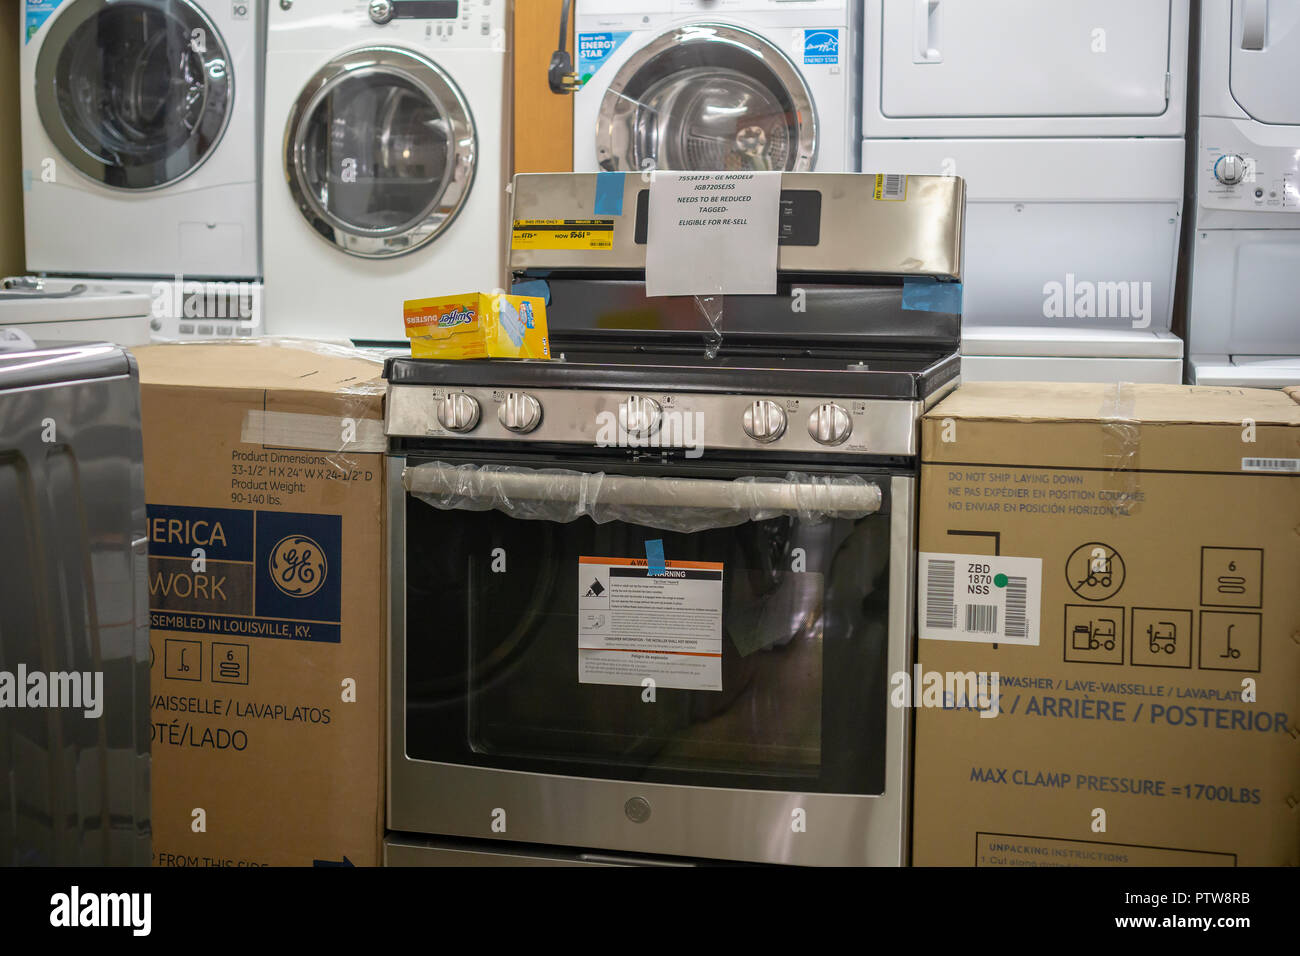 Washing Machines White Goods Stock Photos Circuit Board Genuine Me Depot Various Brands Of Residential Appliances On Display In A Home New York Tuesday